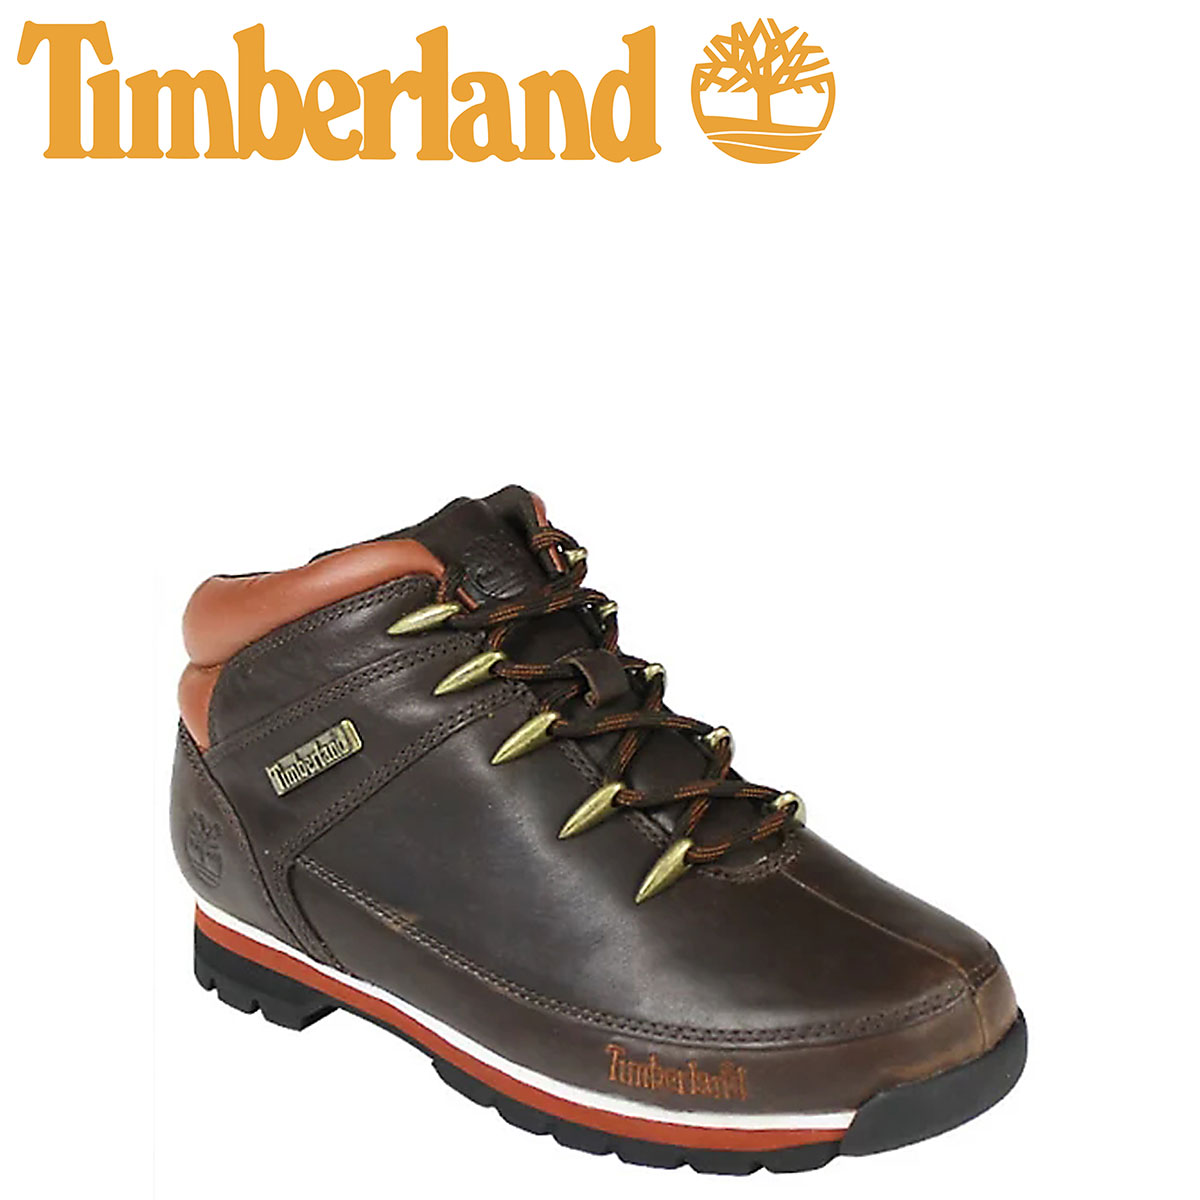 fe7031078bbd Timberland Timberland euro Sprint 2 hiker boots EURO SPRINT 2 HIKER BOOT  nubuck men s 6831R Brown  1   9 new in stock   regular